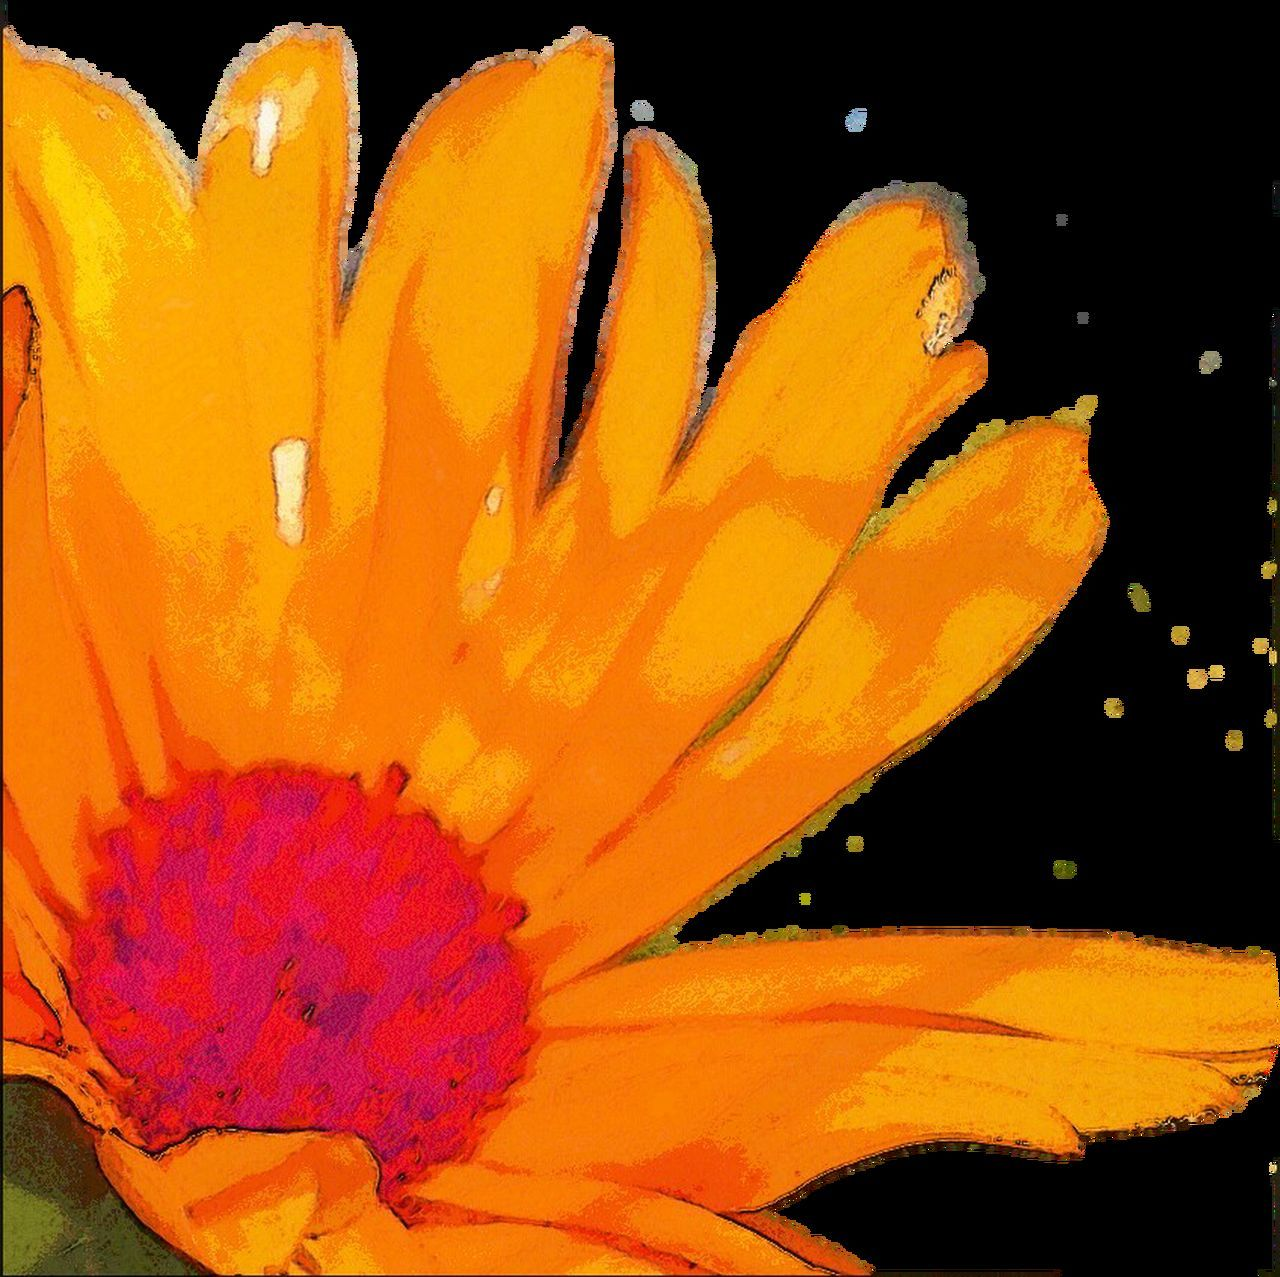 Sketch Sketch Art Extreme Edit Extreme Edits Editing Photos Floral Flower Orange Flowers Painted Flower Painted Flowers Graphic Art Graphic Flower Flowerporn Flowers Flowers, Nature And Beauty Flower Porn Flowers_collection Black Background Black Backdrop Orange Color Orange Flower Big Flower Big Flower!! Big Flower Sketches